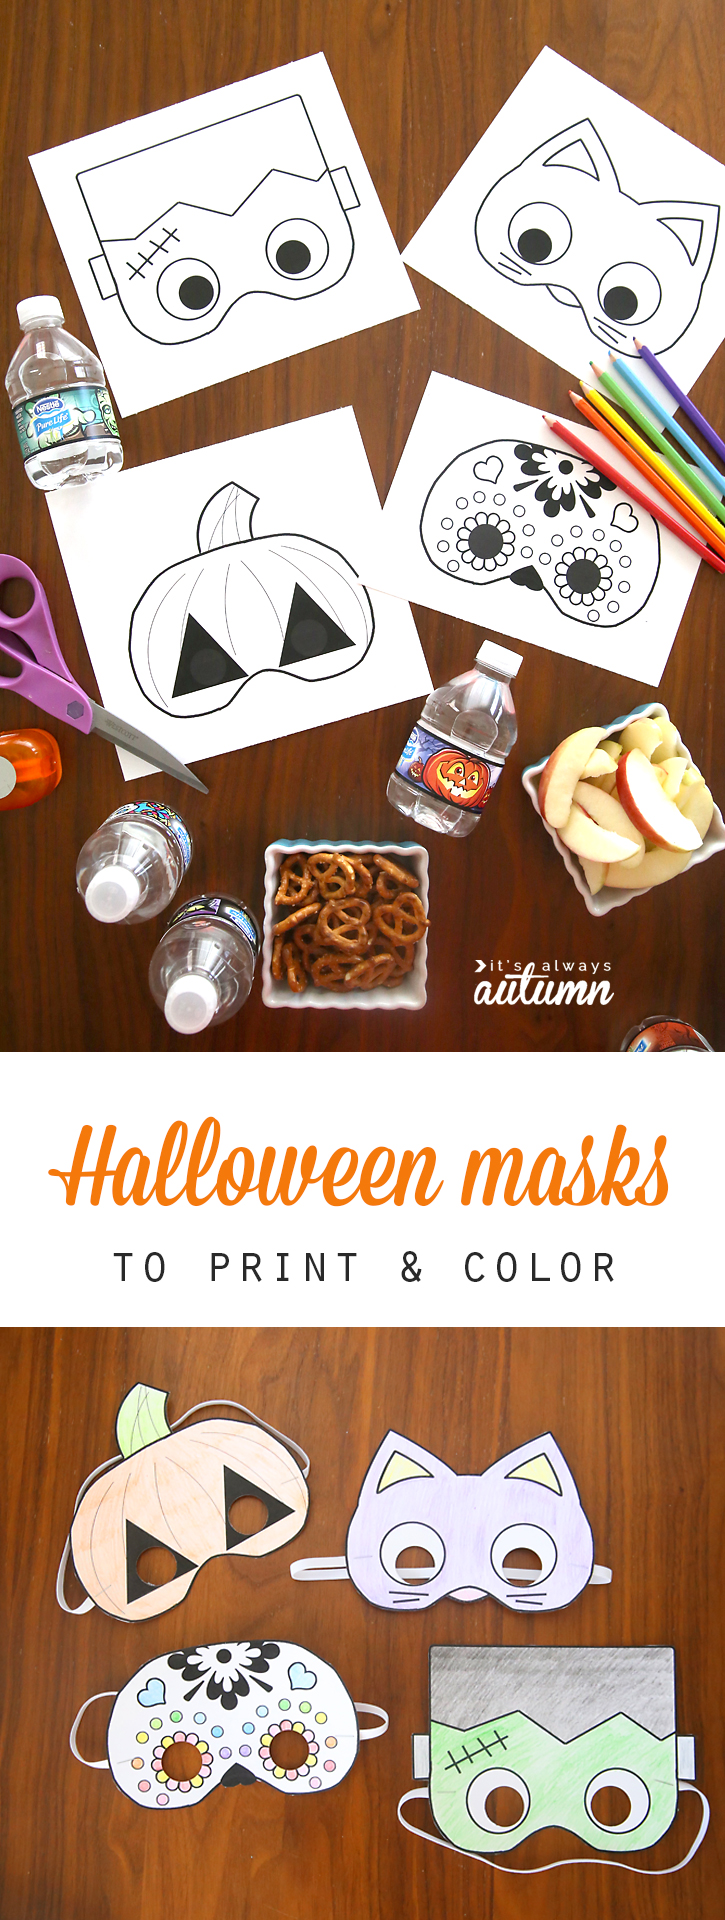 Get Our Free Halloween Writing Paper Plus 15 Spooky Writing Prompts